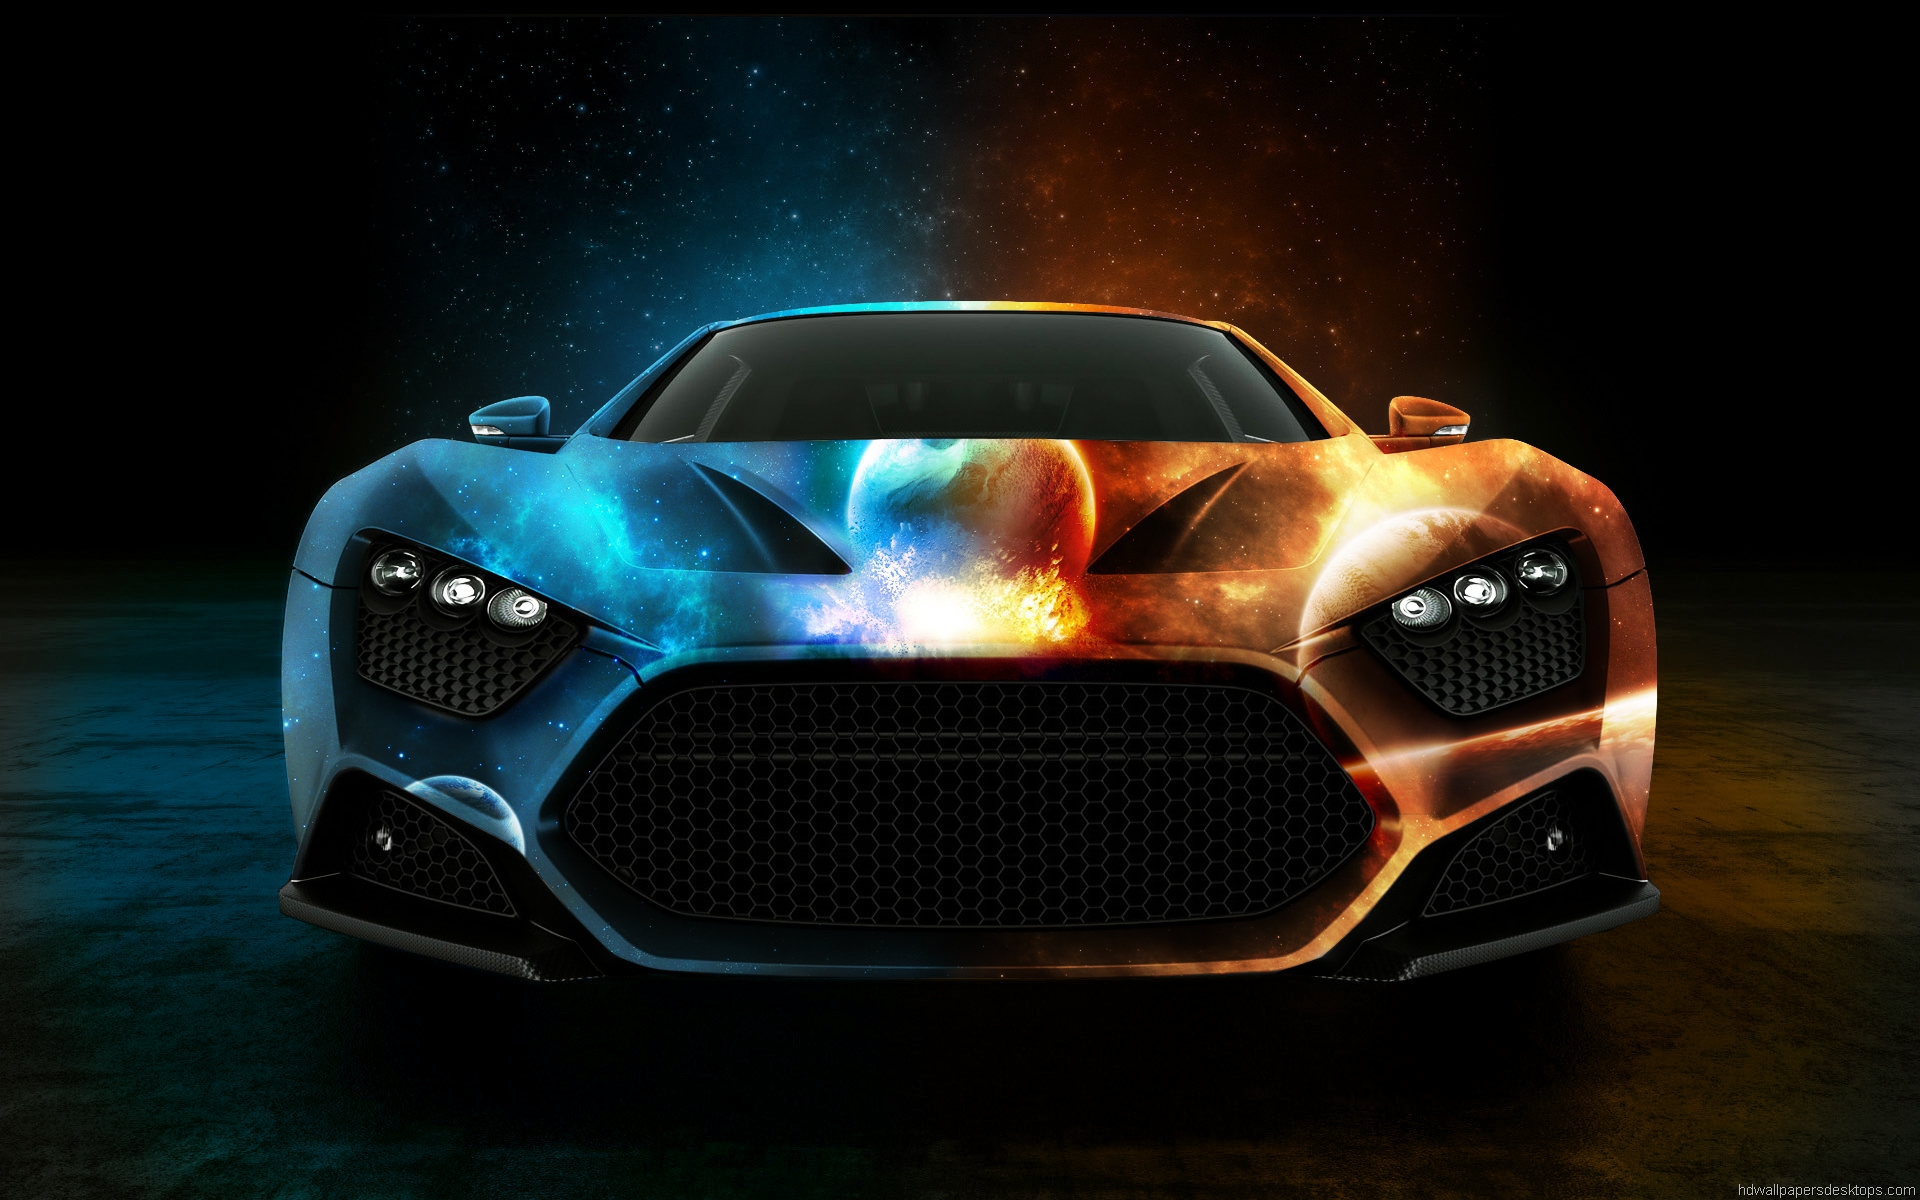 Hd wallpaper car - Cars Wallpapers Hd Full 1080p Desktop Backgrounds 1920x1200 Pictures